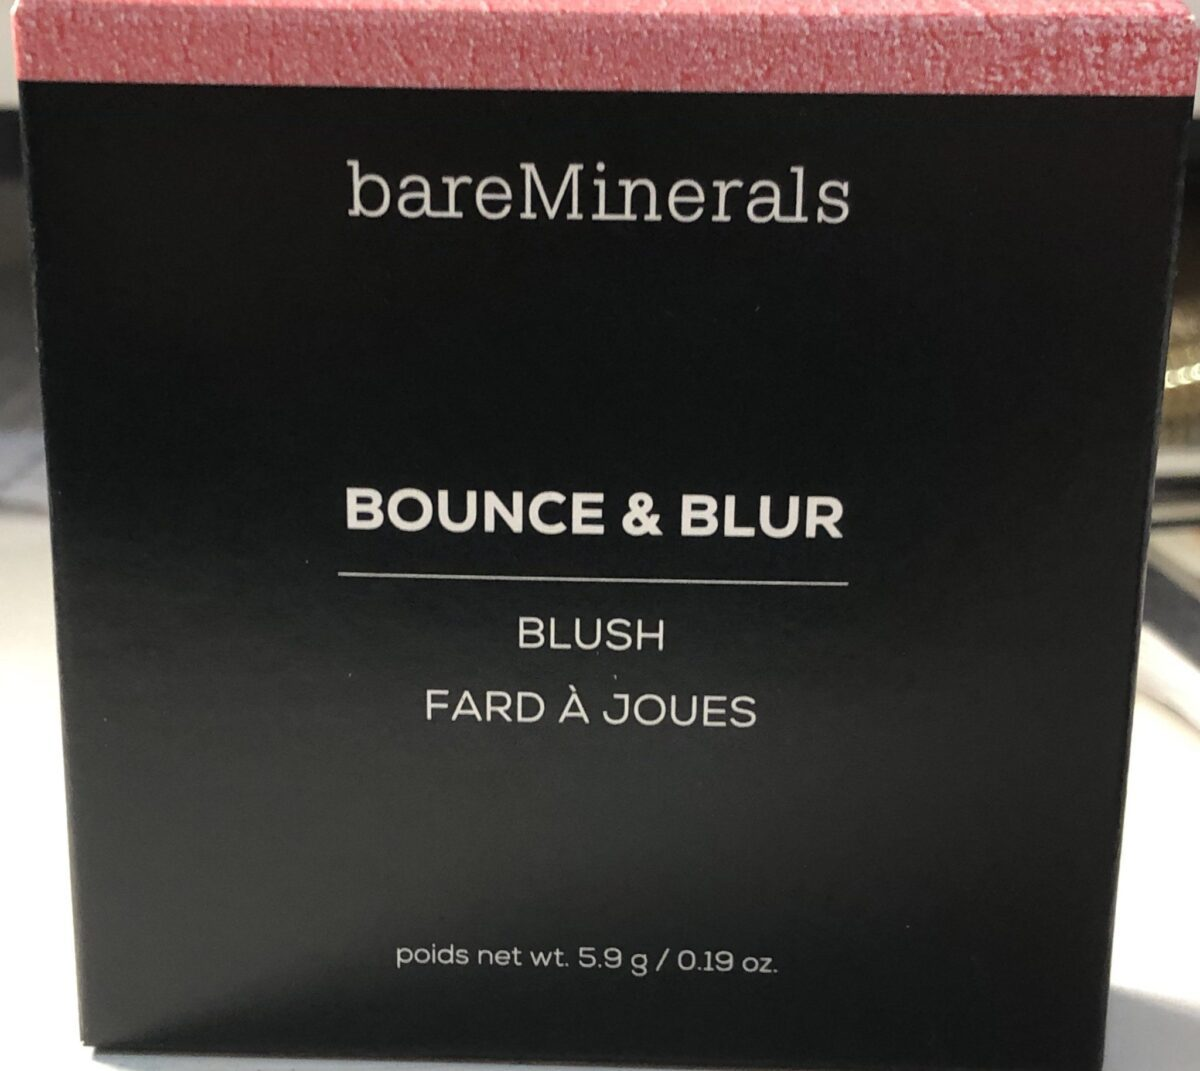 BAREMINERALS BOUNCE & BLUR BLUSH OUTER PACKAGING BOX